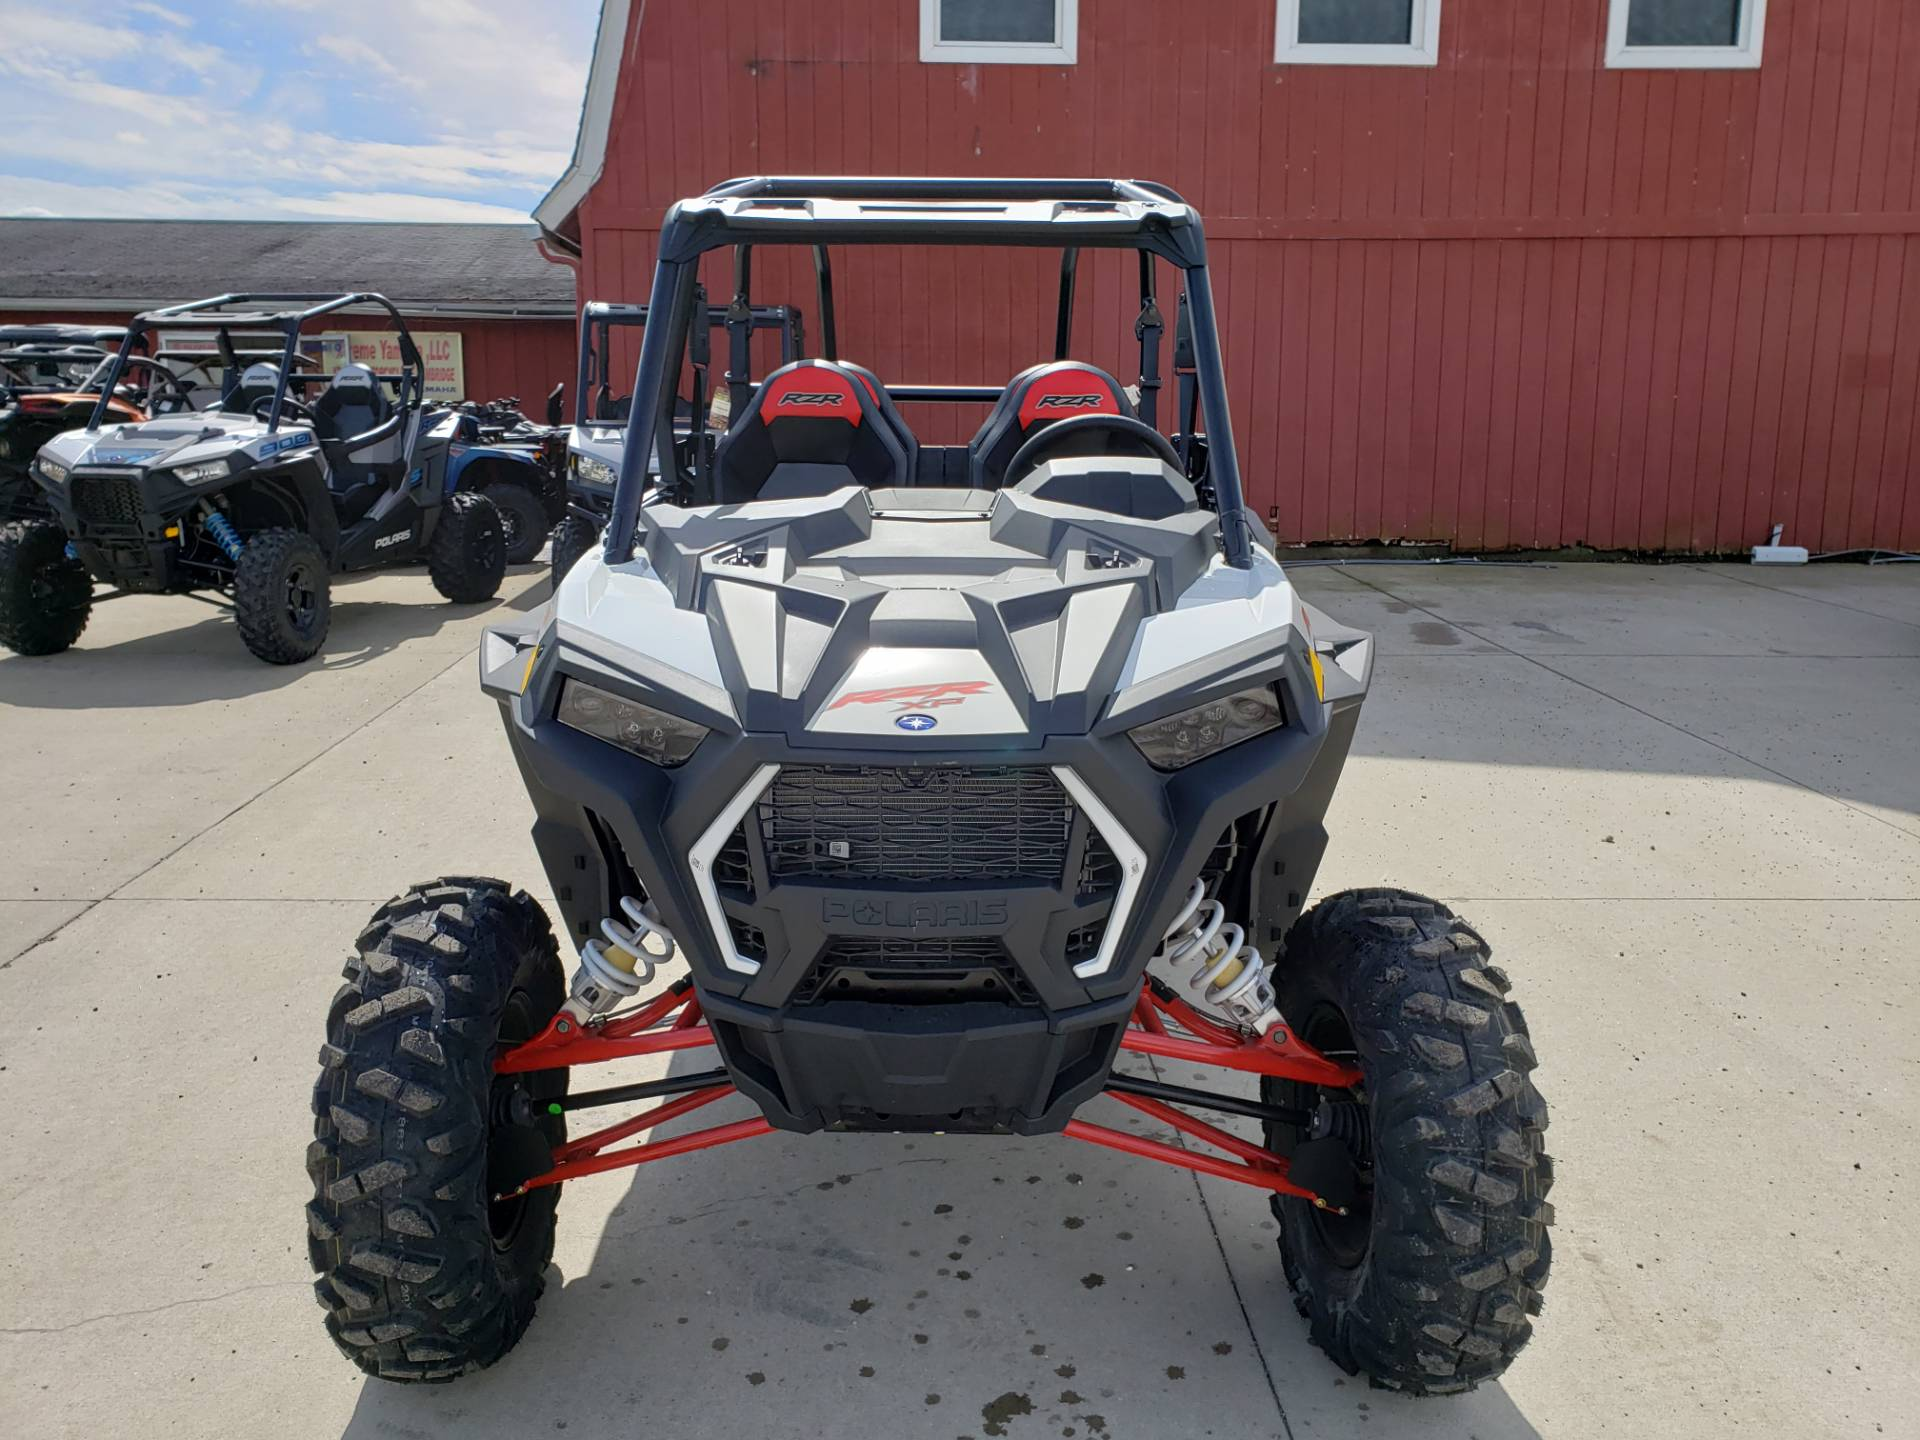 2020 Polaris RZR XP 4 1000 in Cambridge, Ohio - Photo 5